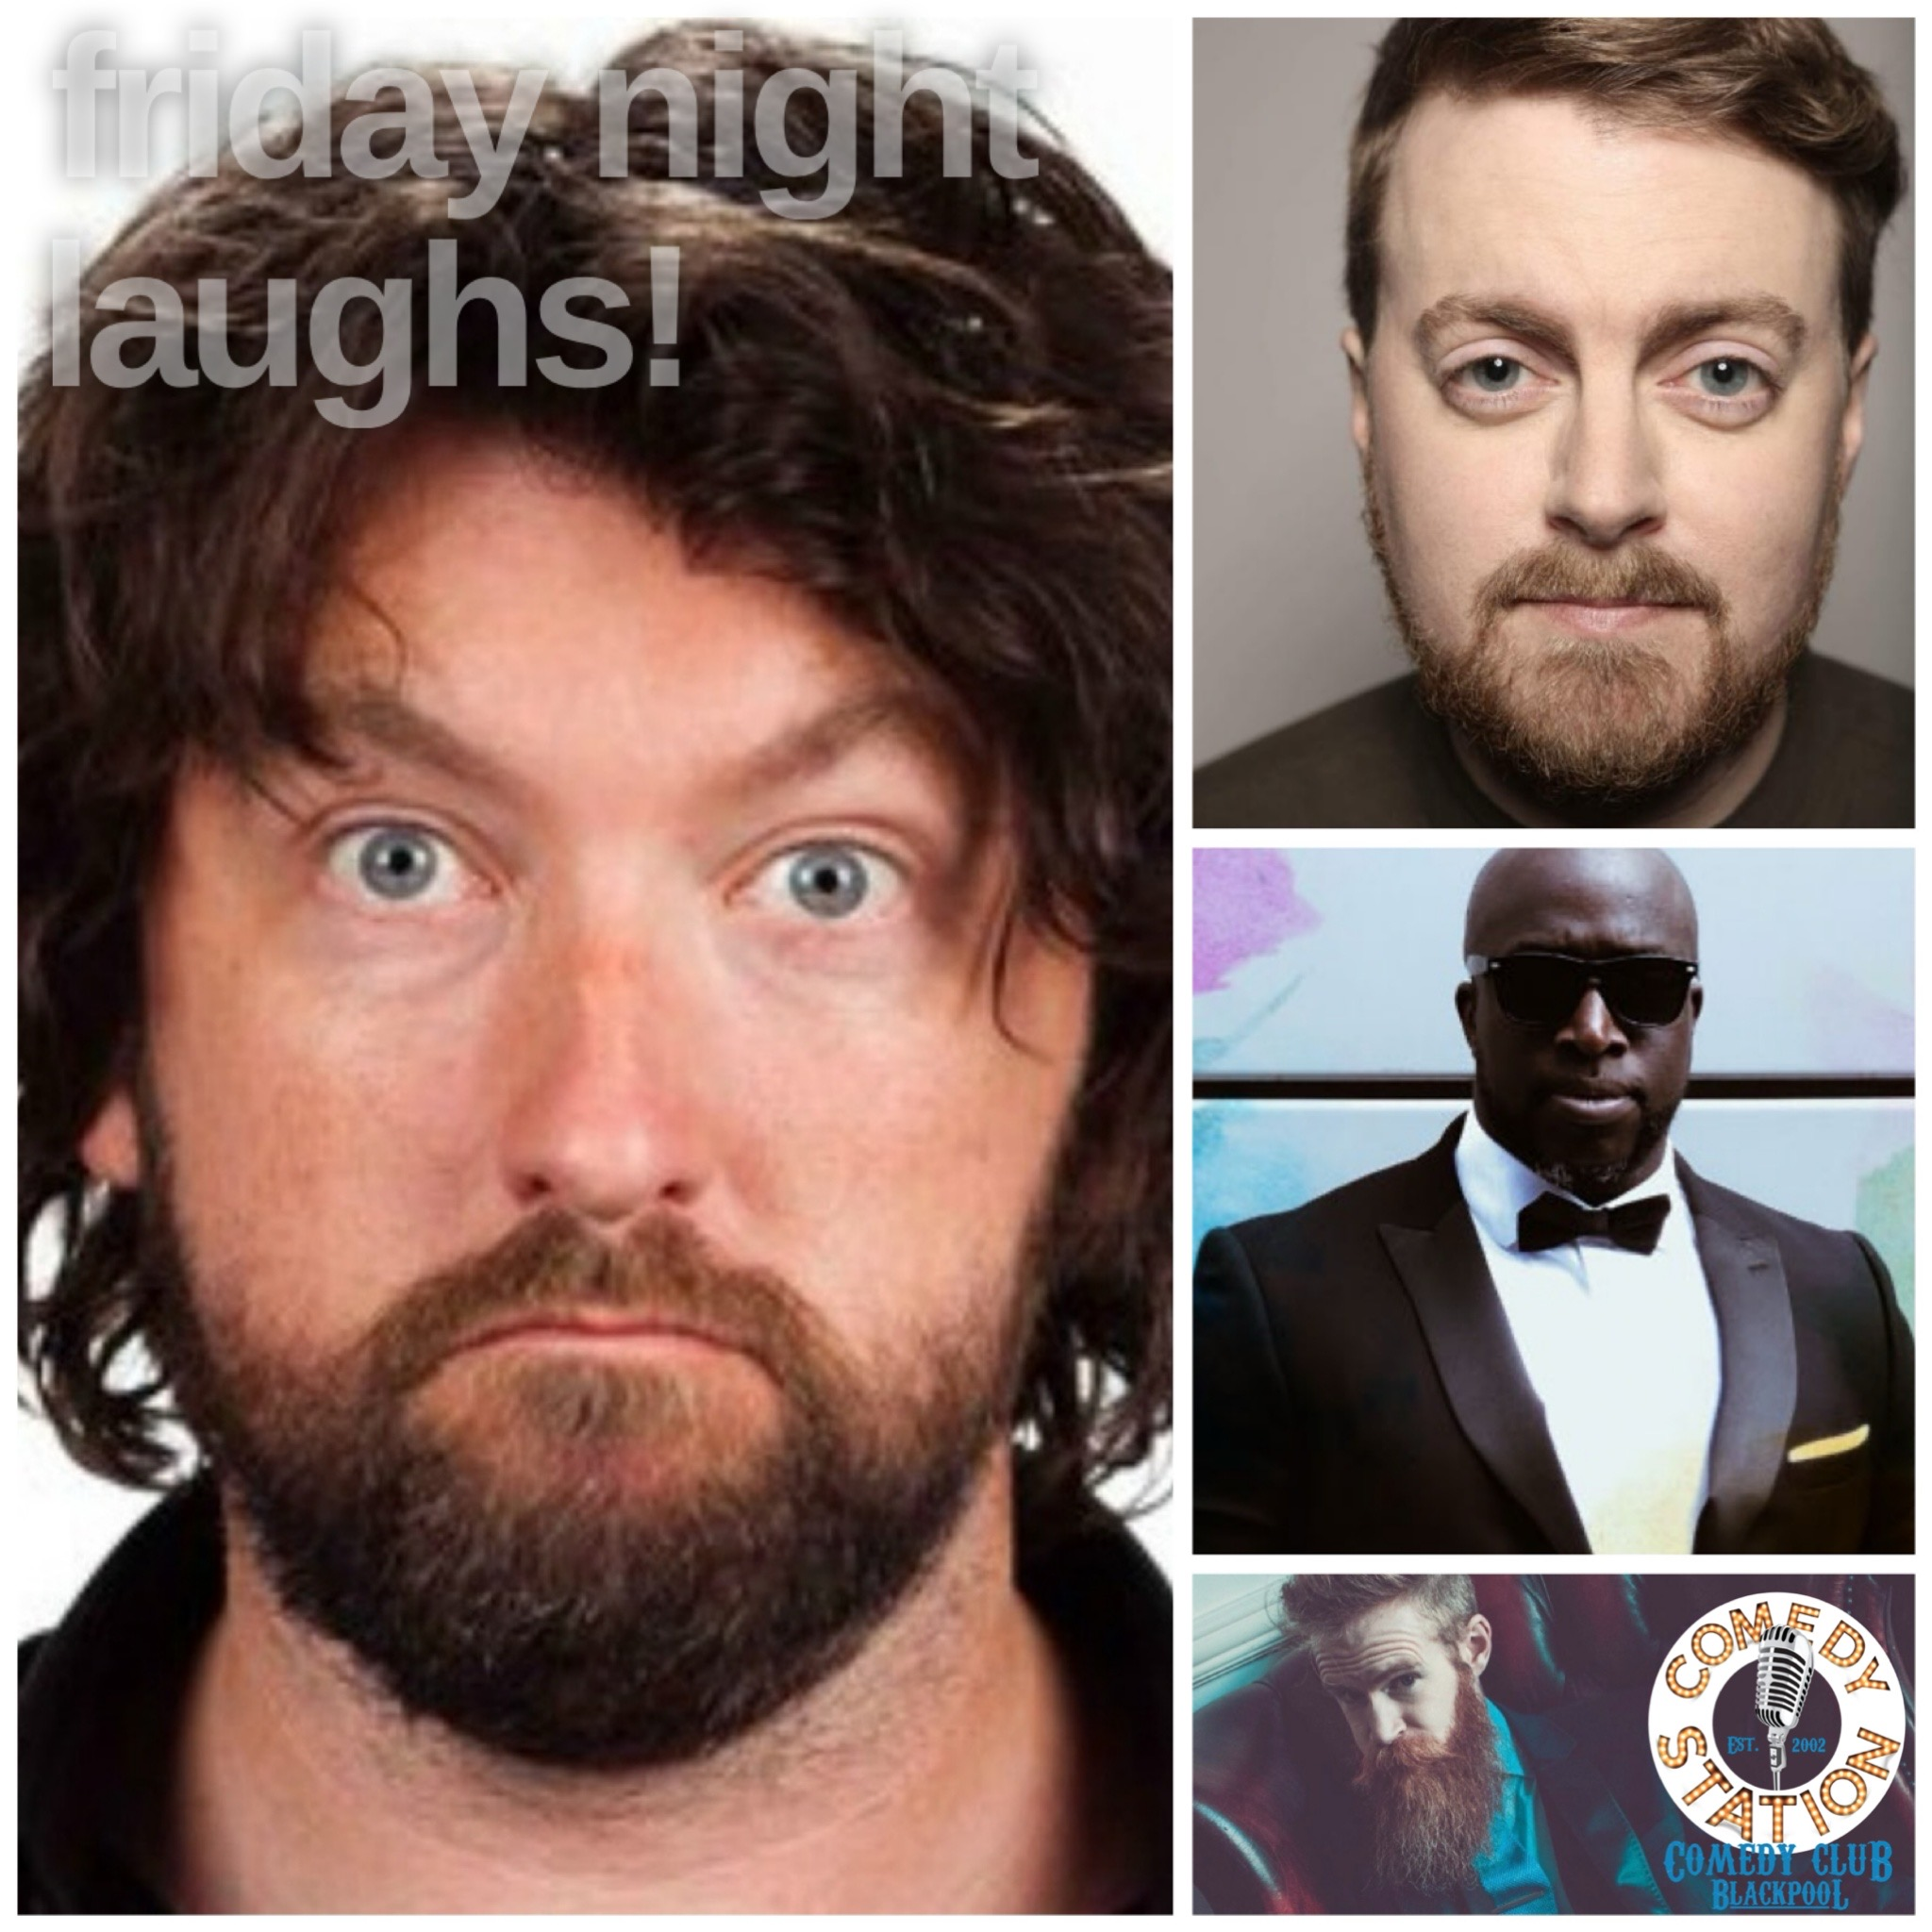 Comedy show Blackpool Friday 6th august